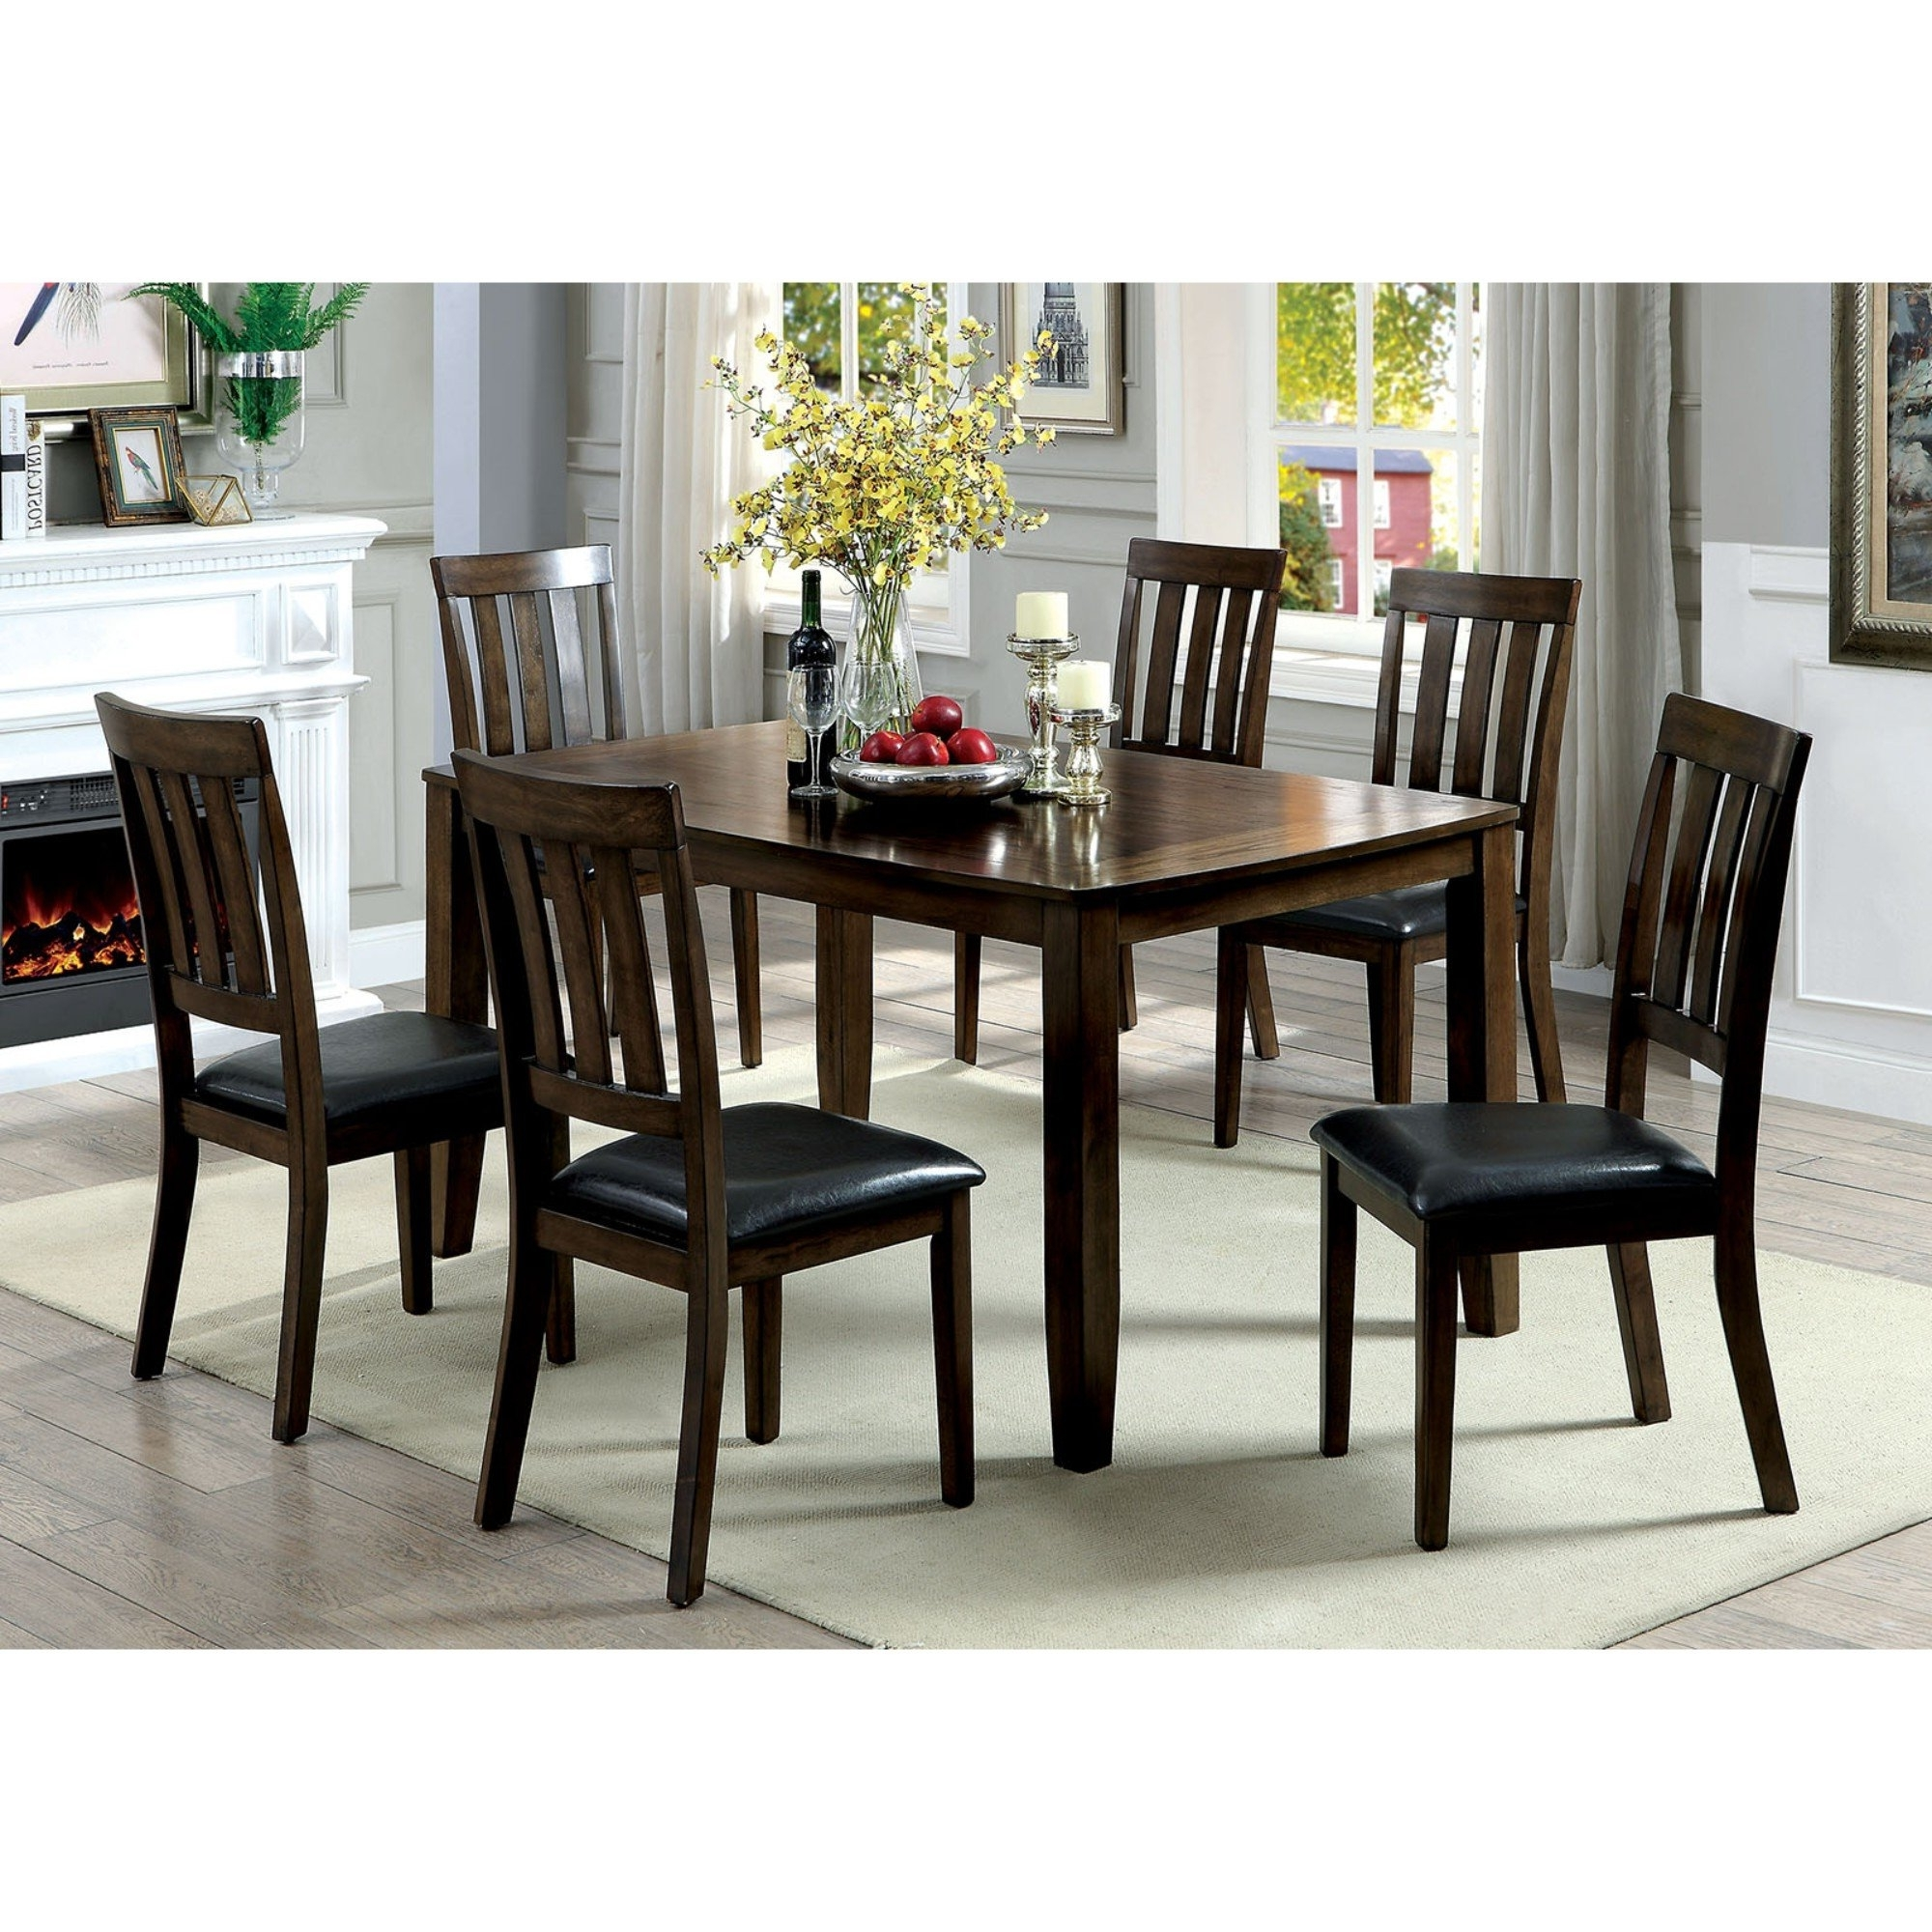 Candice Ii 7 Piece Extension Rectangular Dining Sets With Uph Side Chairs Inside Latest Millwood Pines Devon Wooden 7 Piece Counter Height Dining Table Set (View 5 of 25)